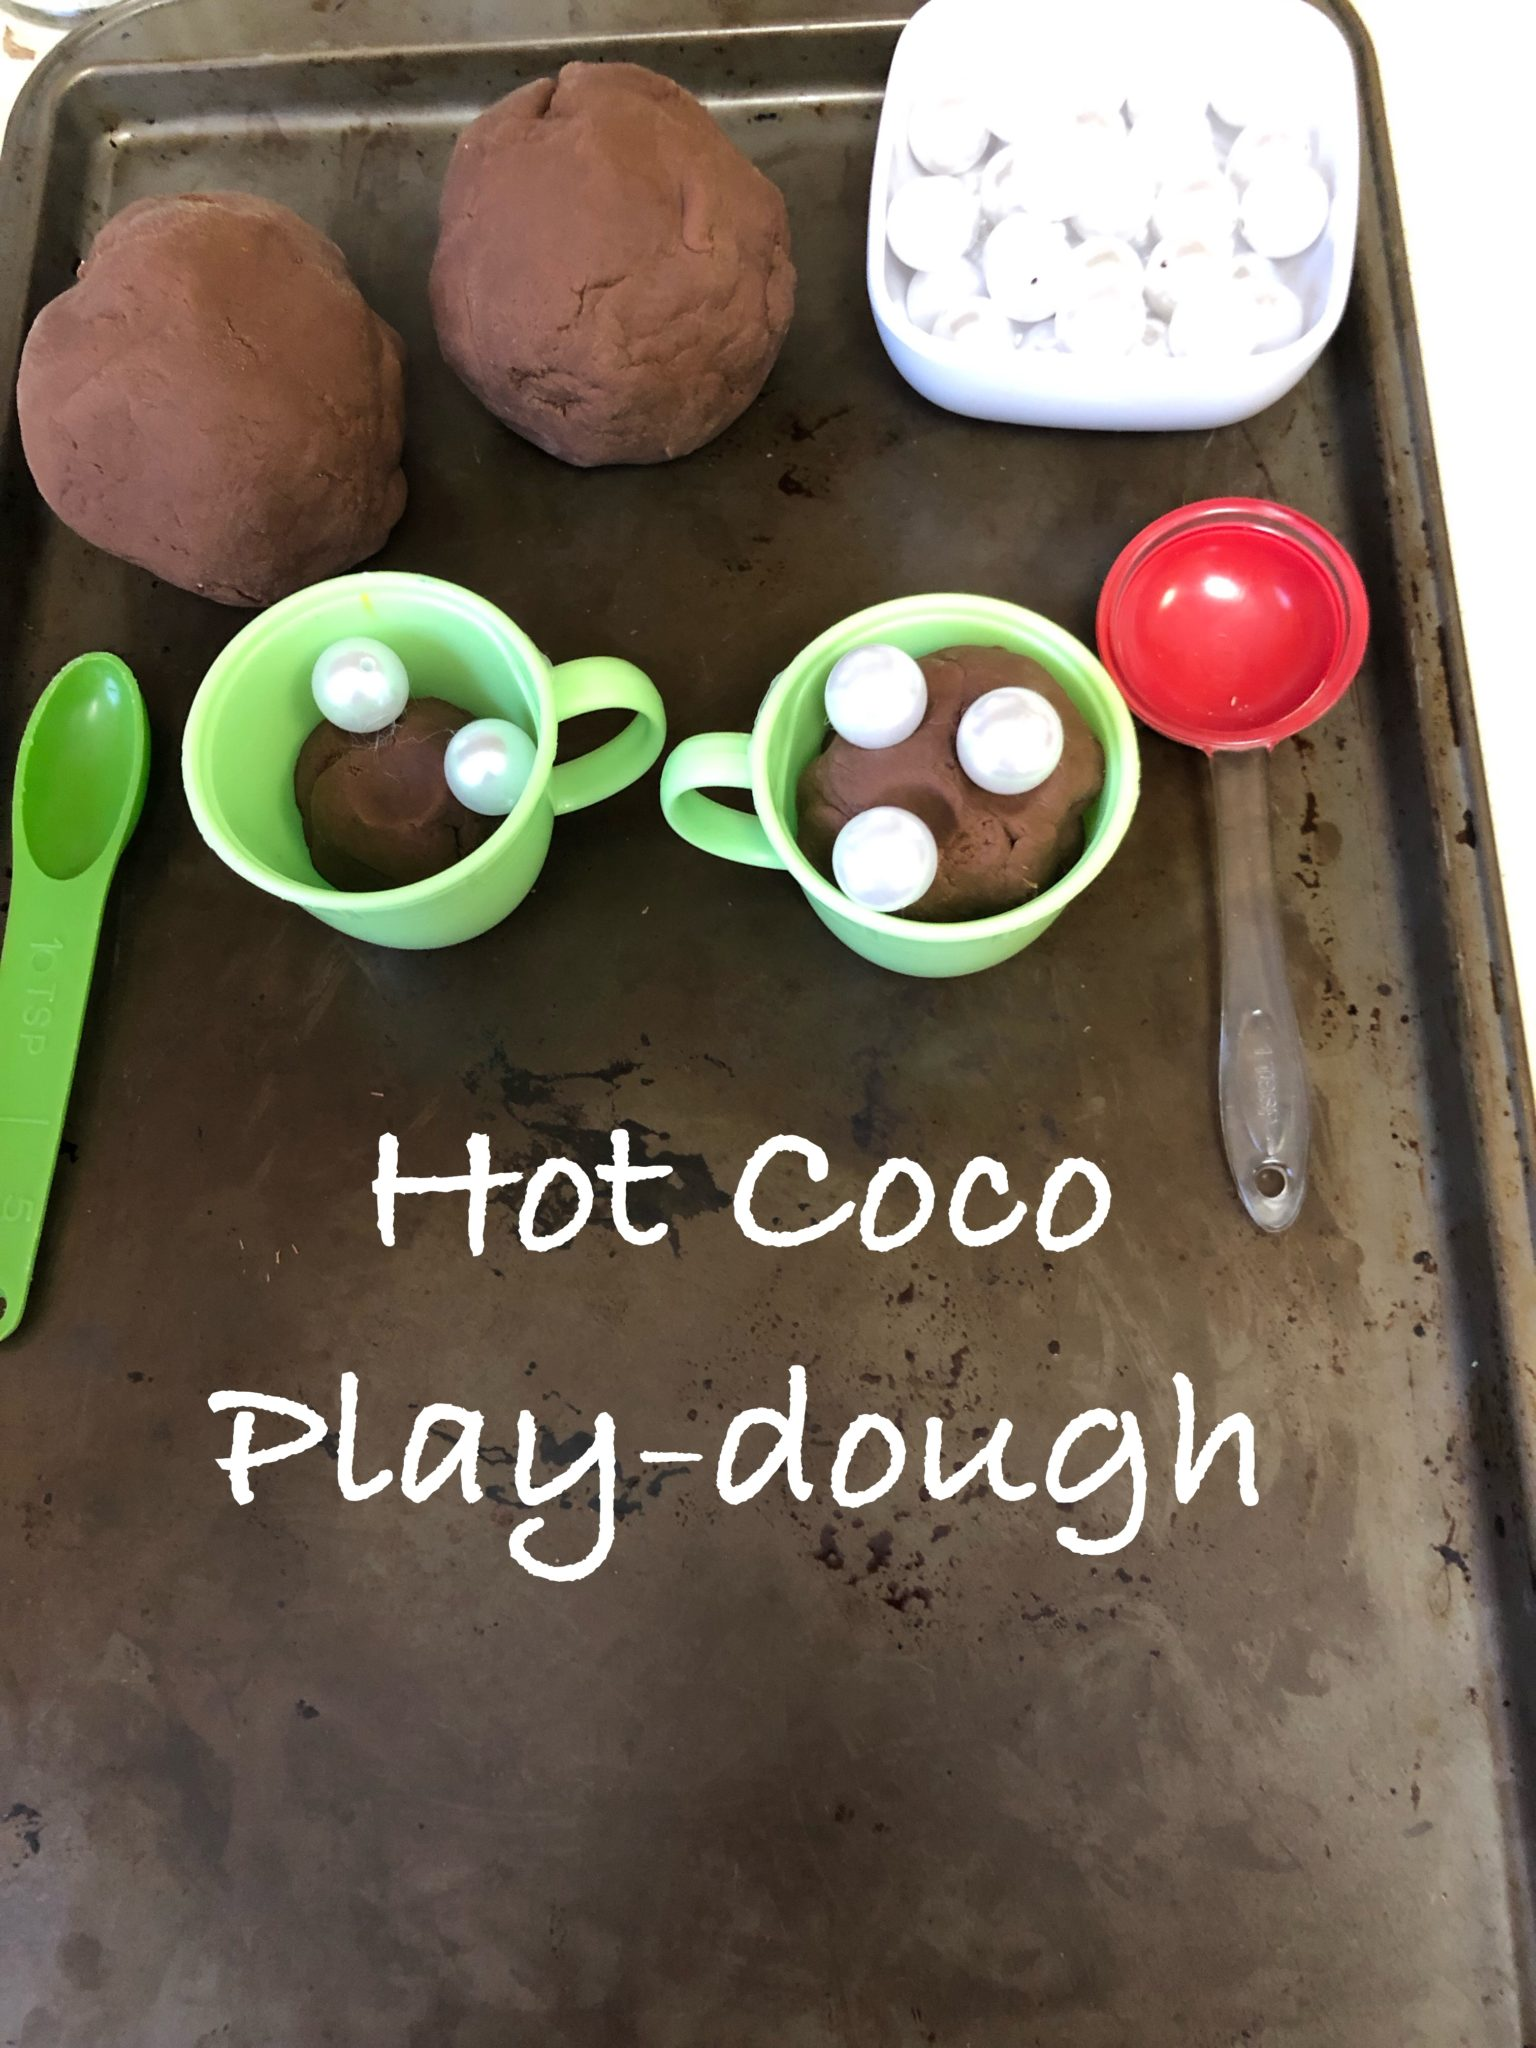 Hot Coco Play-dough